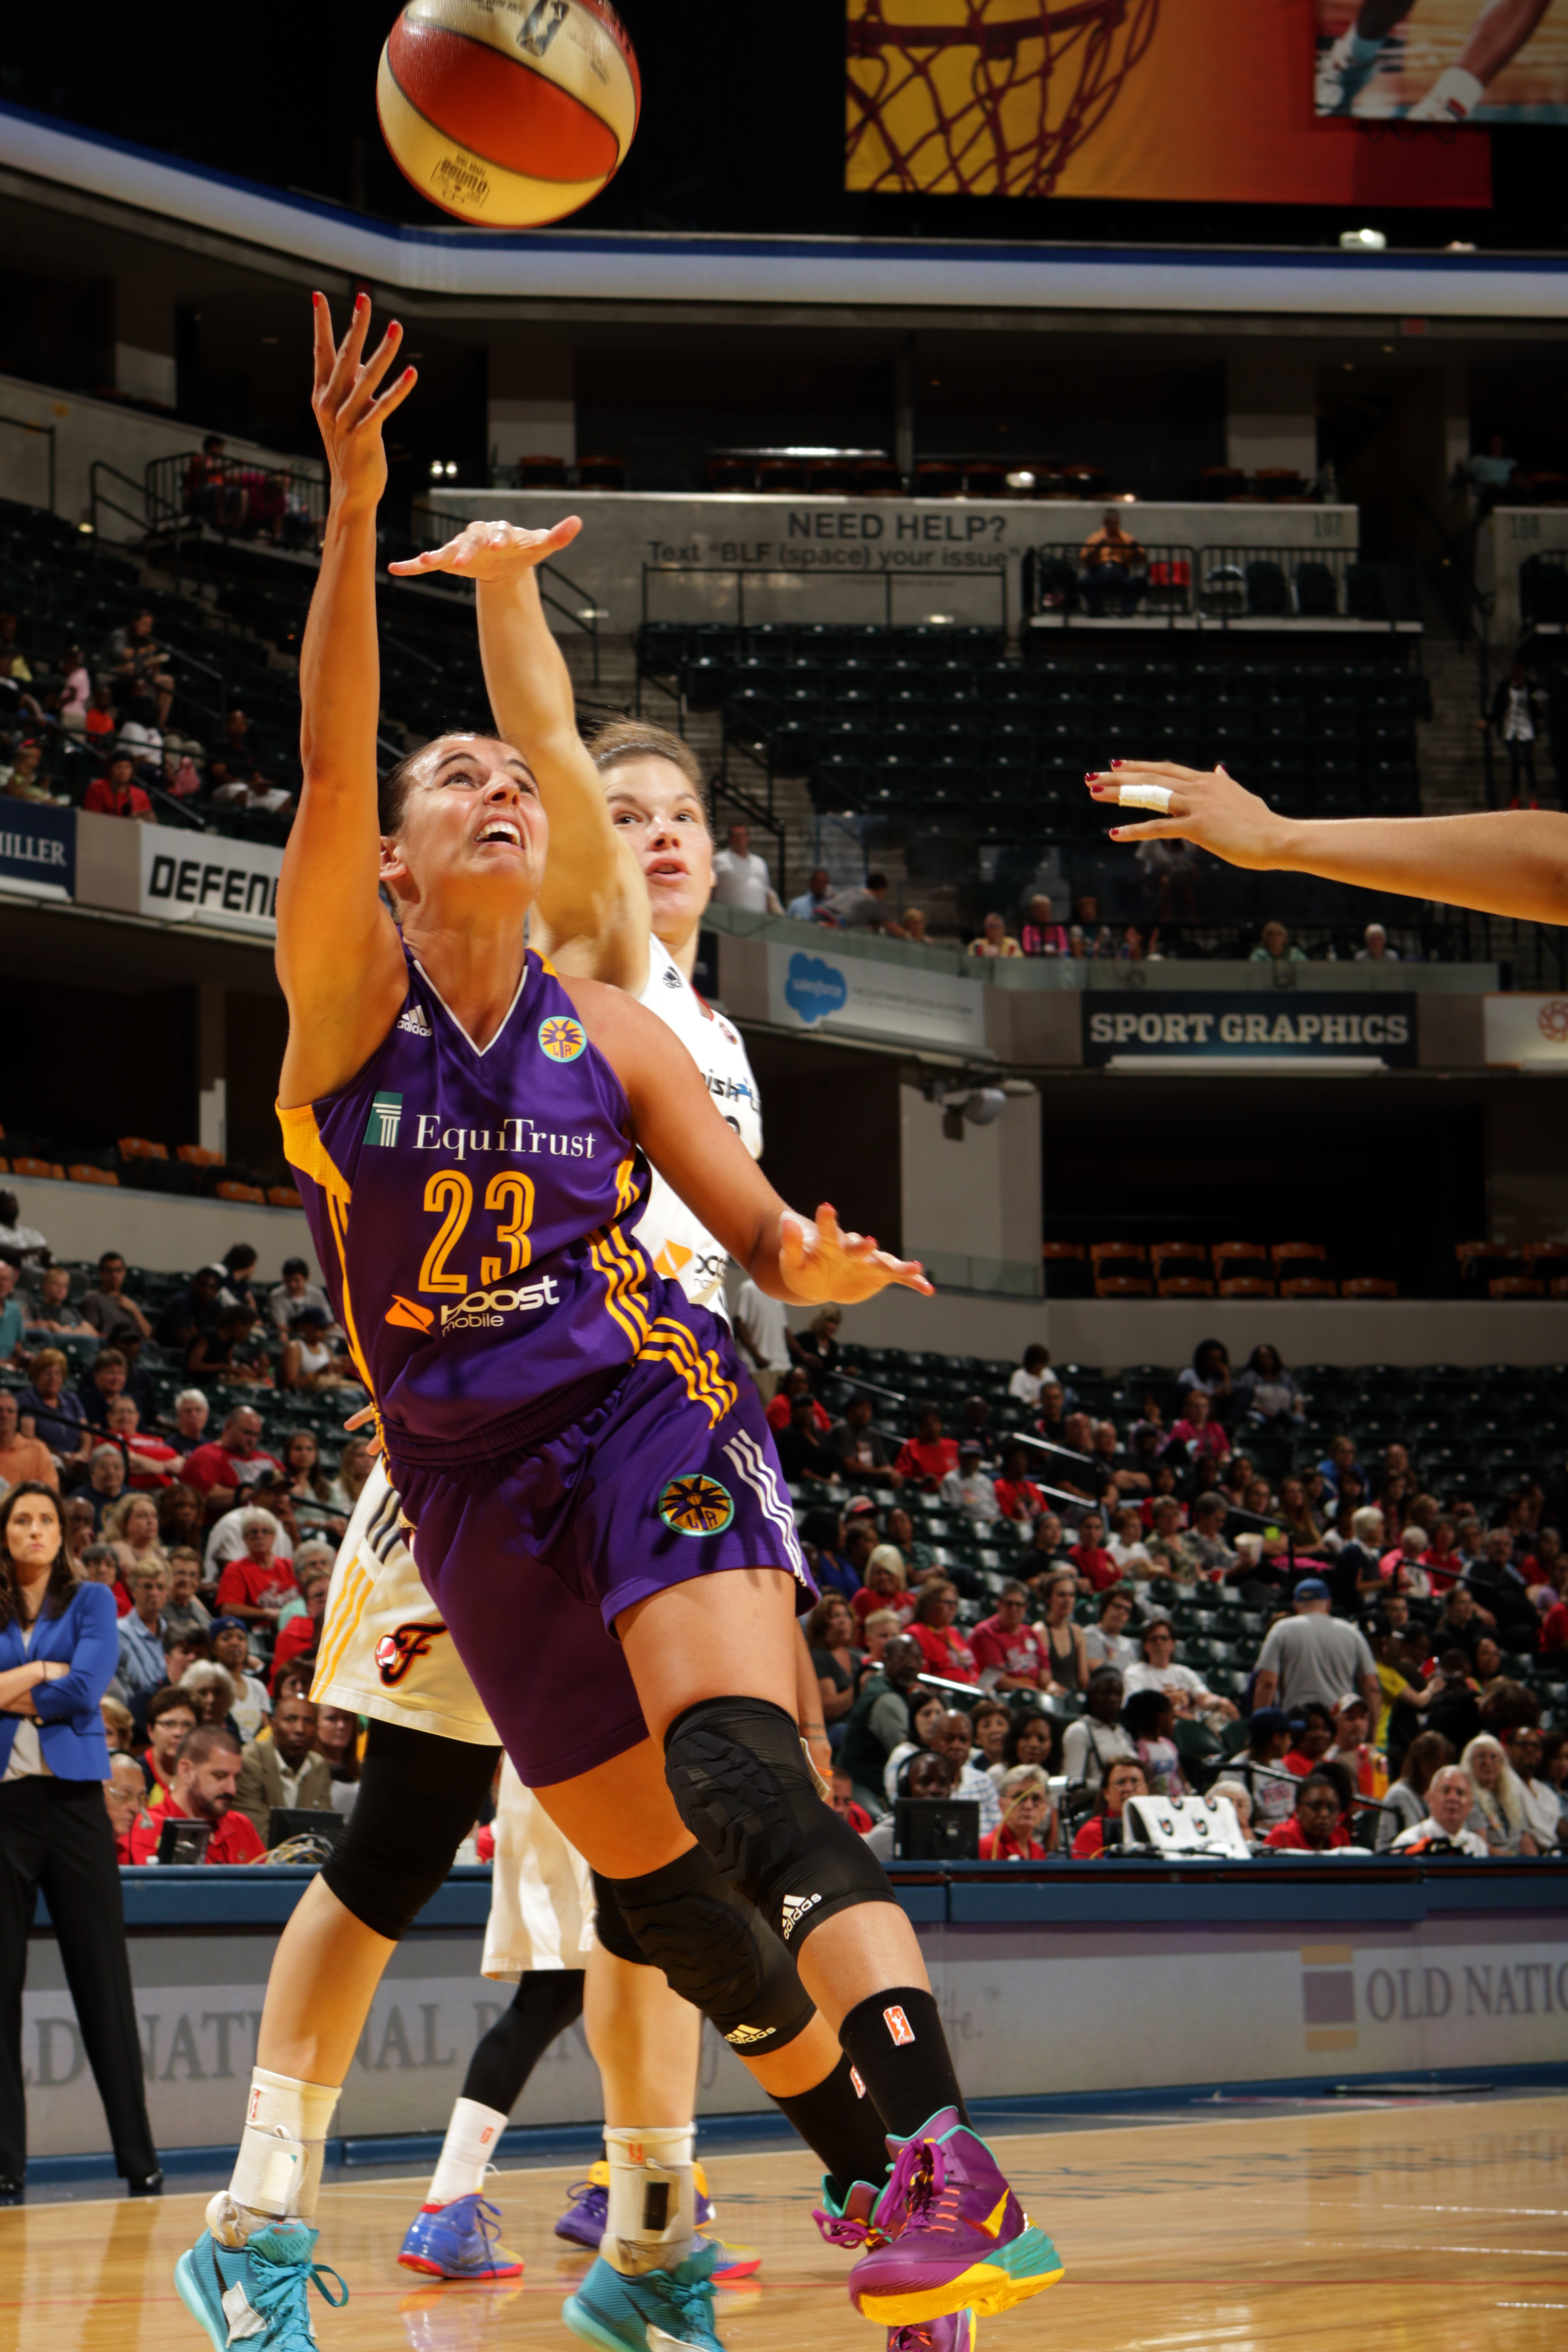 INDIANAPOLIS - AUGUST 26: Ana Dabovic #23 of the Los Angeles Sparks shoots the ball against the Indiana Fever on August 26, 2015 in Indianapolis, Indiana.  (Photo by Ron Hoskins/NBAE via Getty Images)